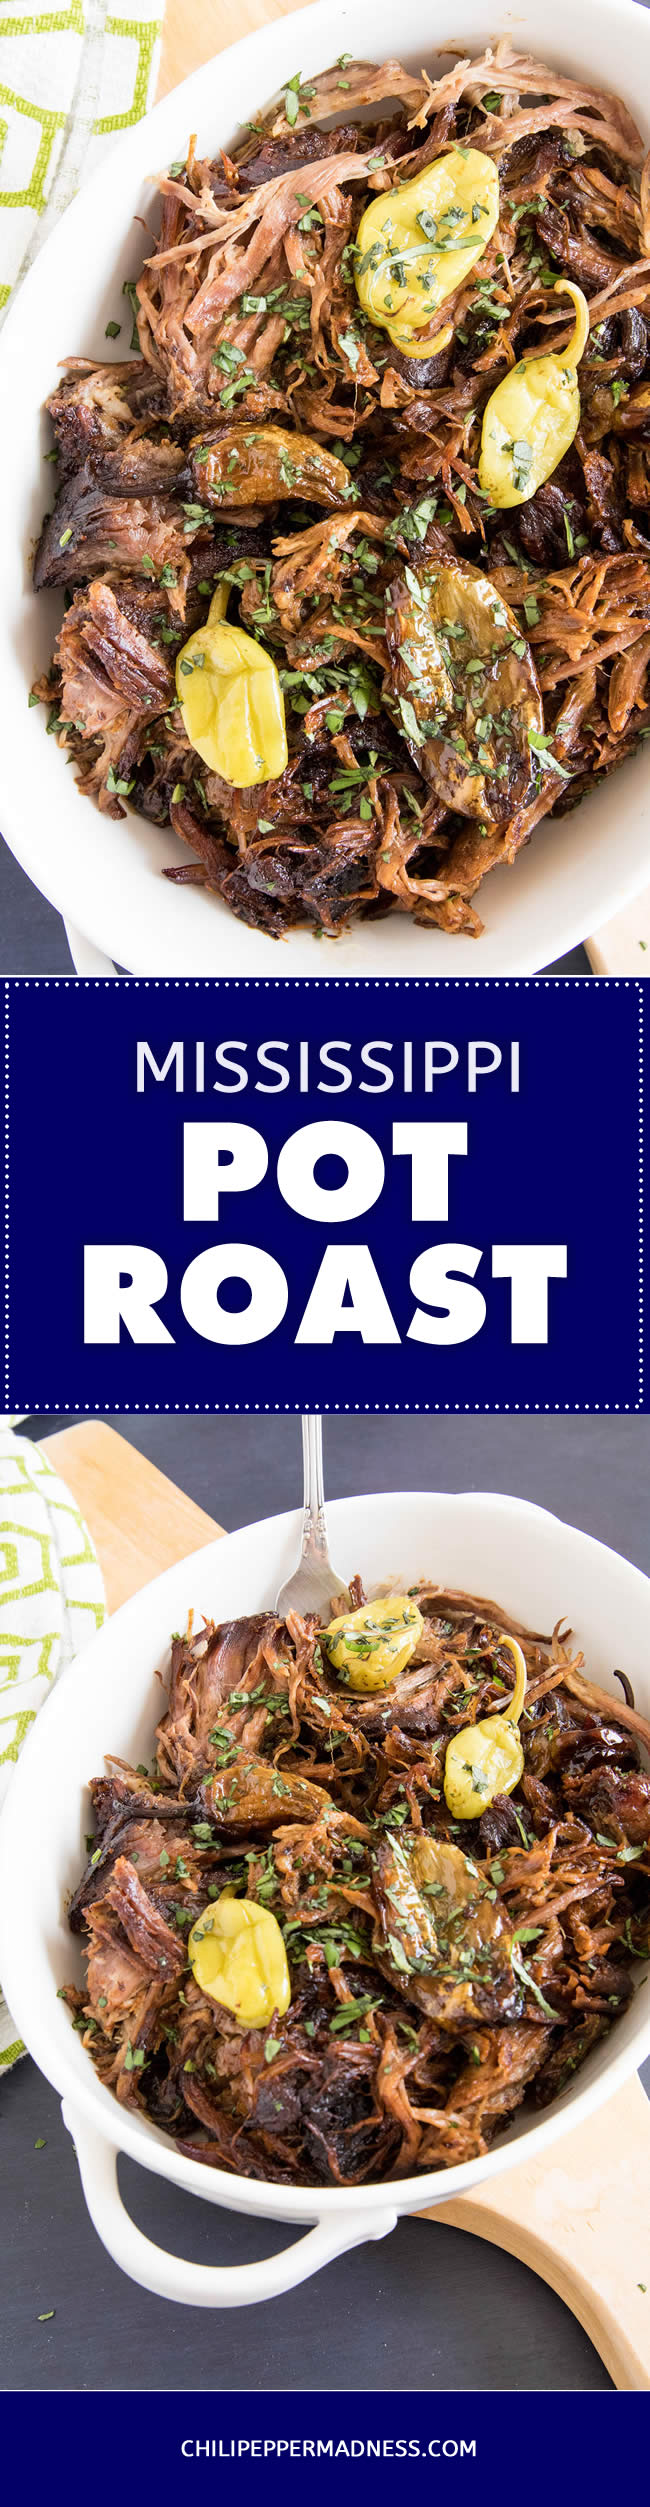 Famous Mississippi Pot Roast - Recipe